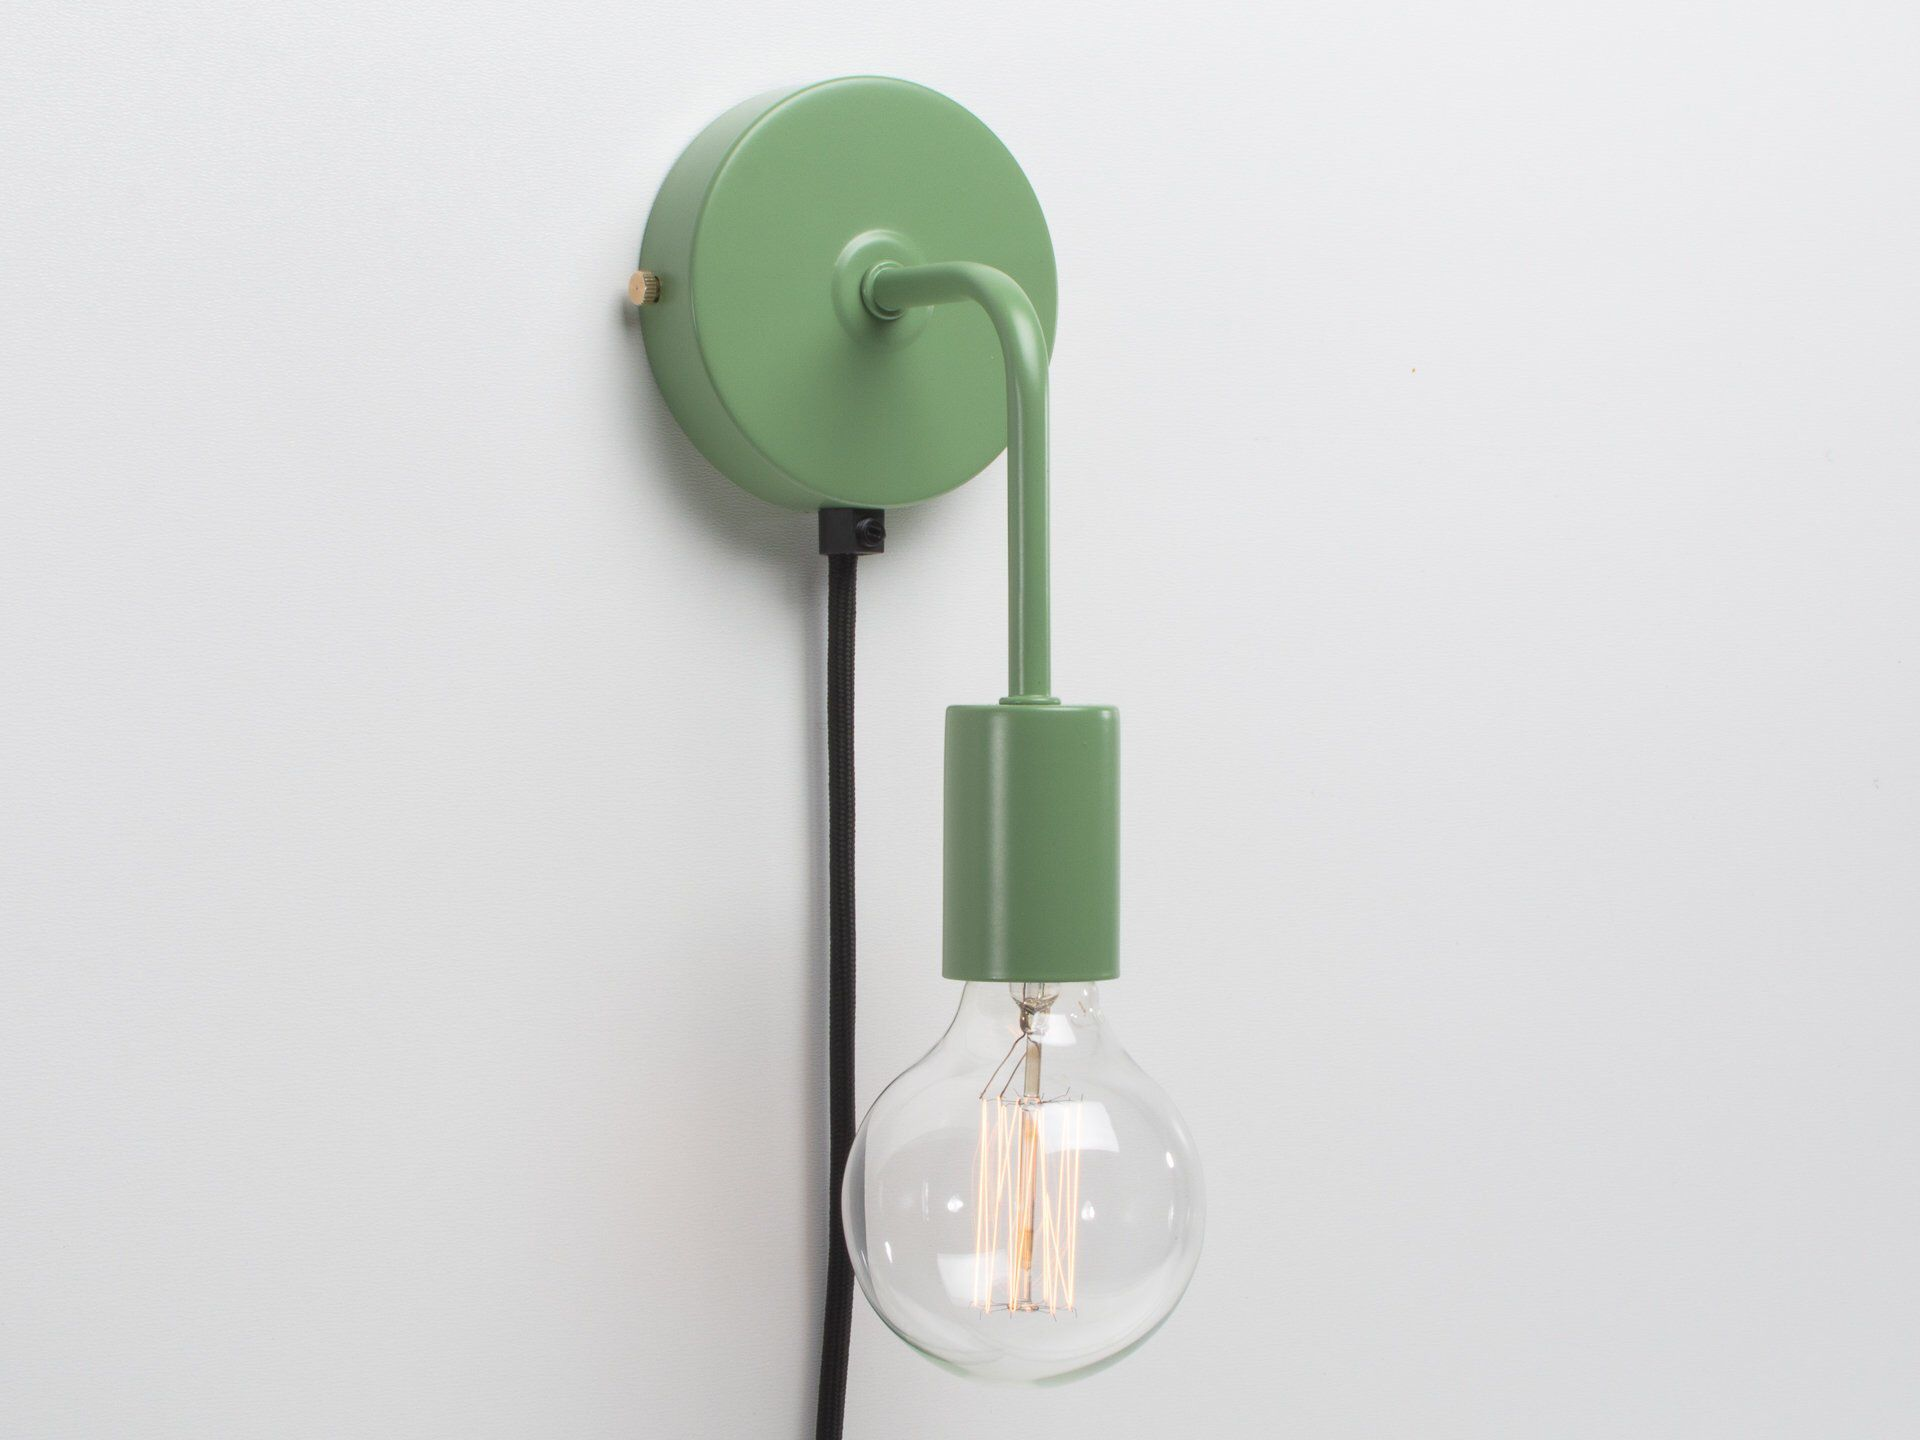 Minimalist Color Wall Sconce Plug In On Off Switch Green Retro Loft Industrial Lamp By Retrolightstore On Etsy Plug In Sconce Wall Colors Sconces